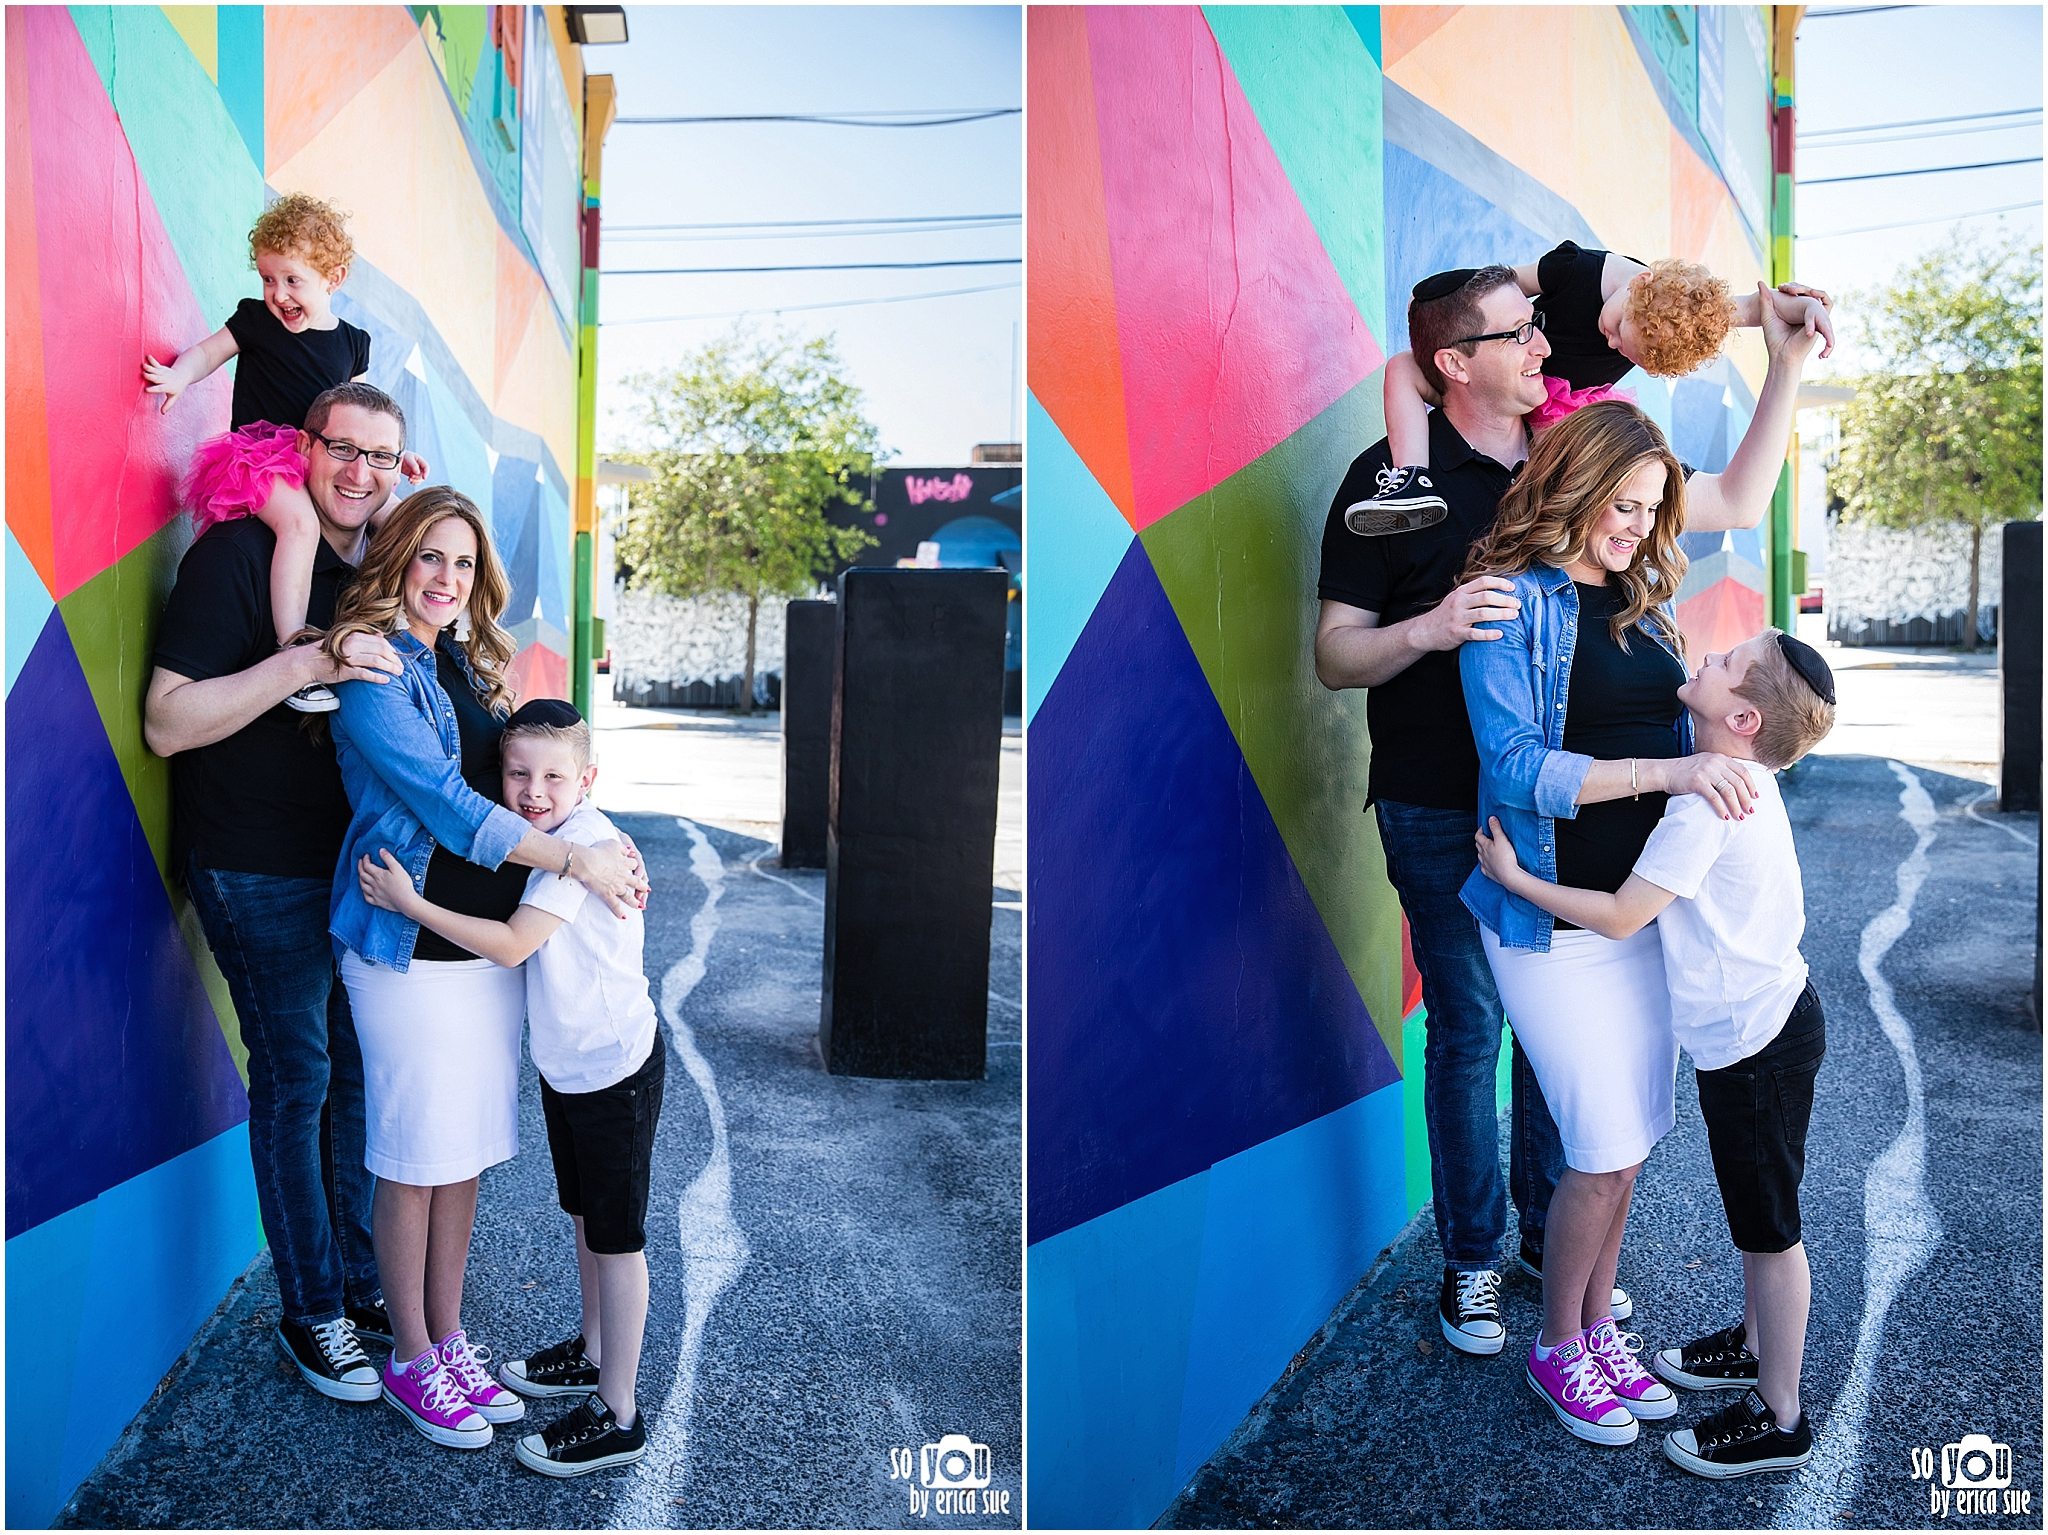 wynwood-family-photography-so-you-by-erica-sue-ft-lauderdale-davie-miami-fl-florida-2490 (2).jpg